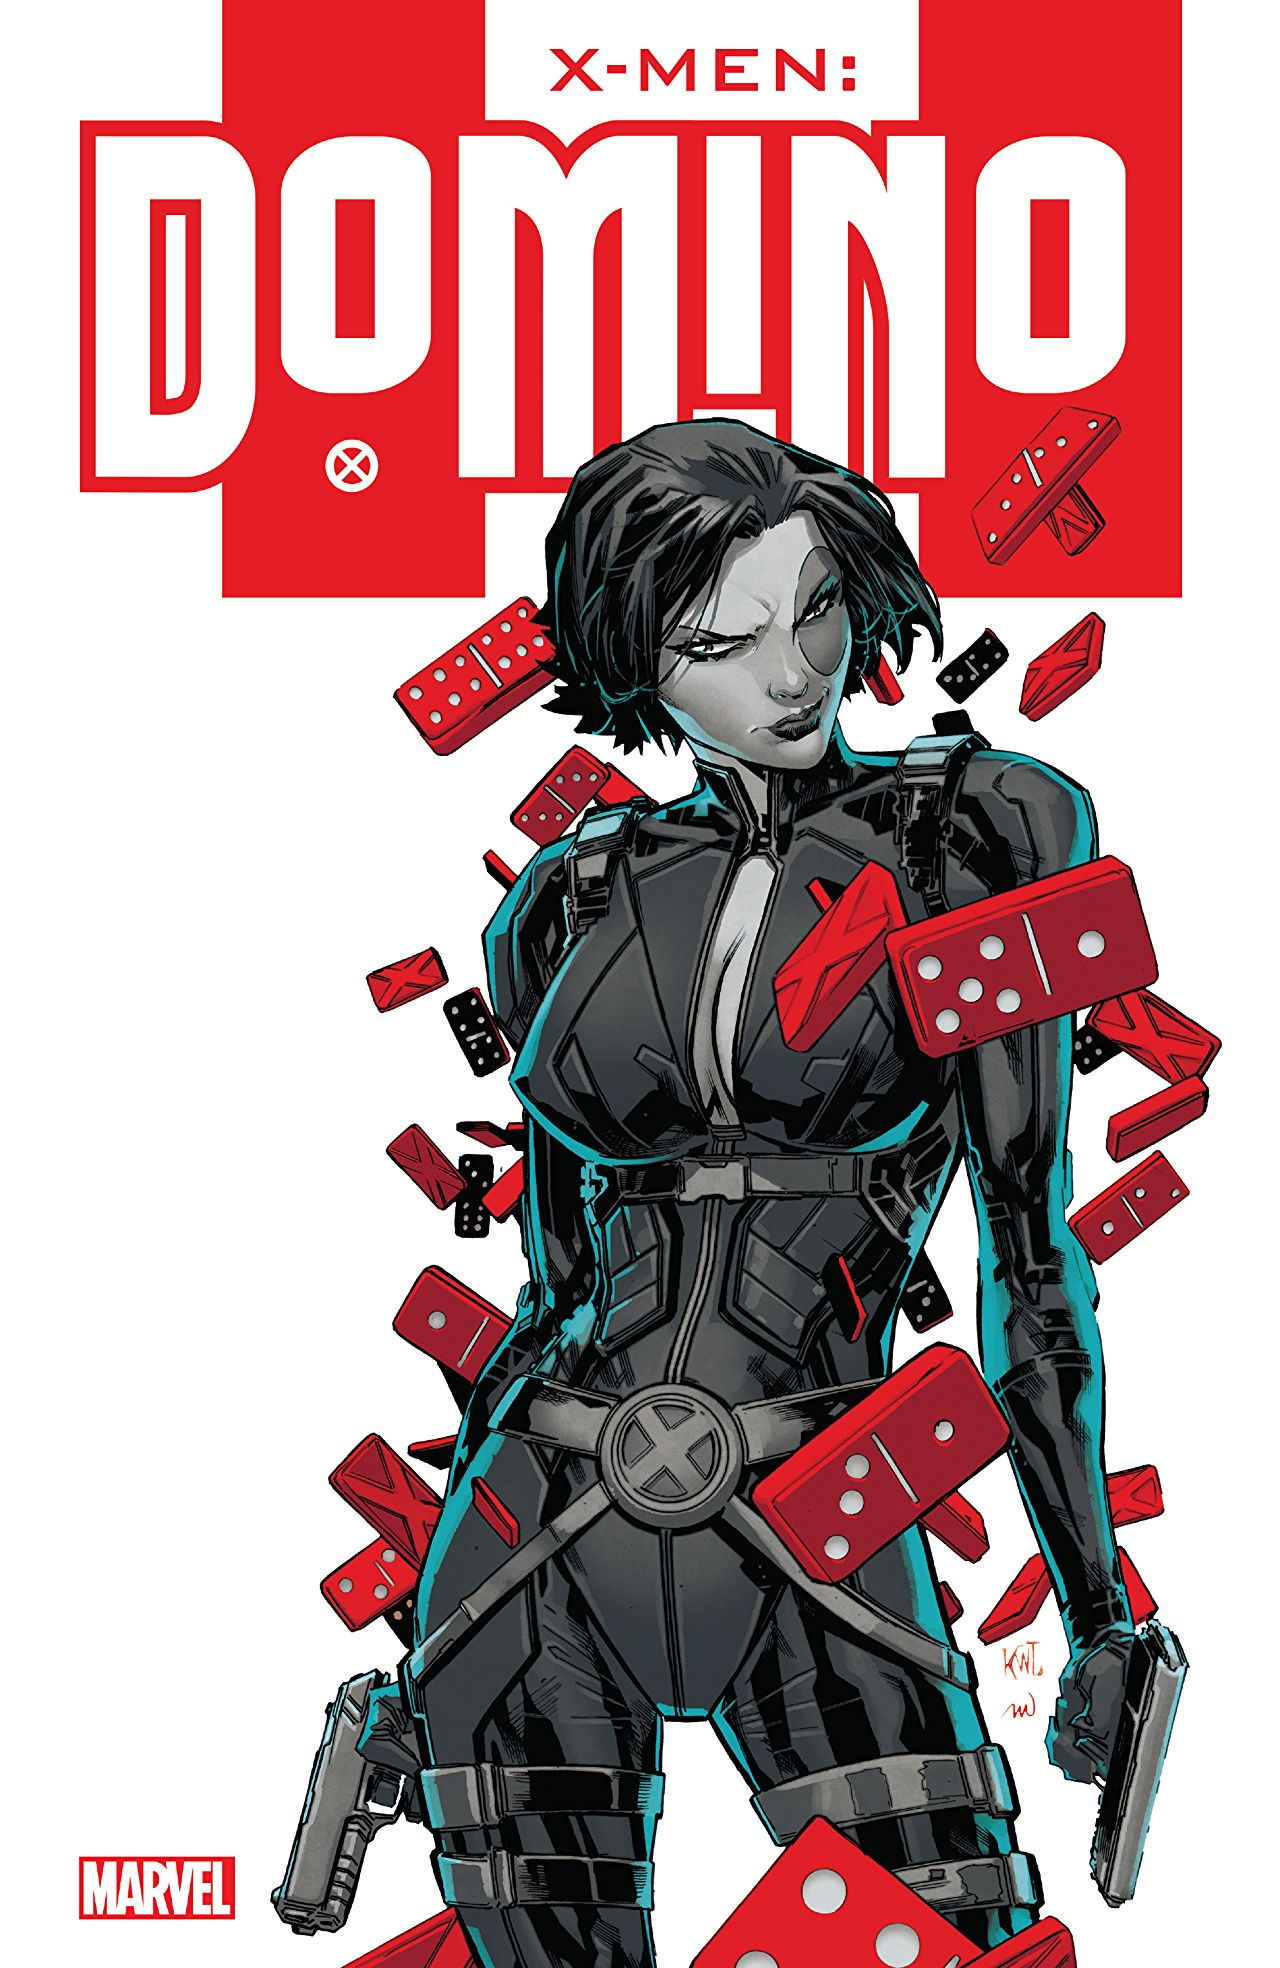 X-Men: Domino review: Detailing Domino's rocky history